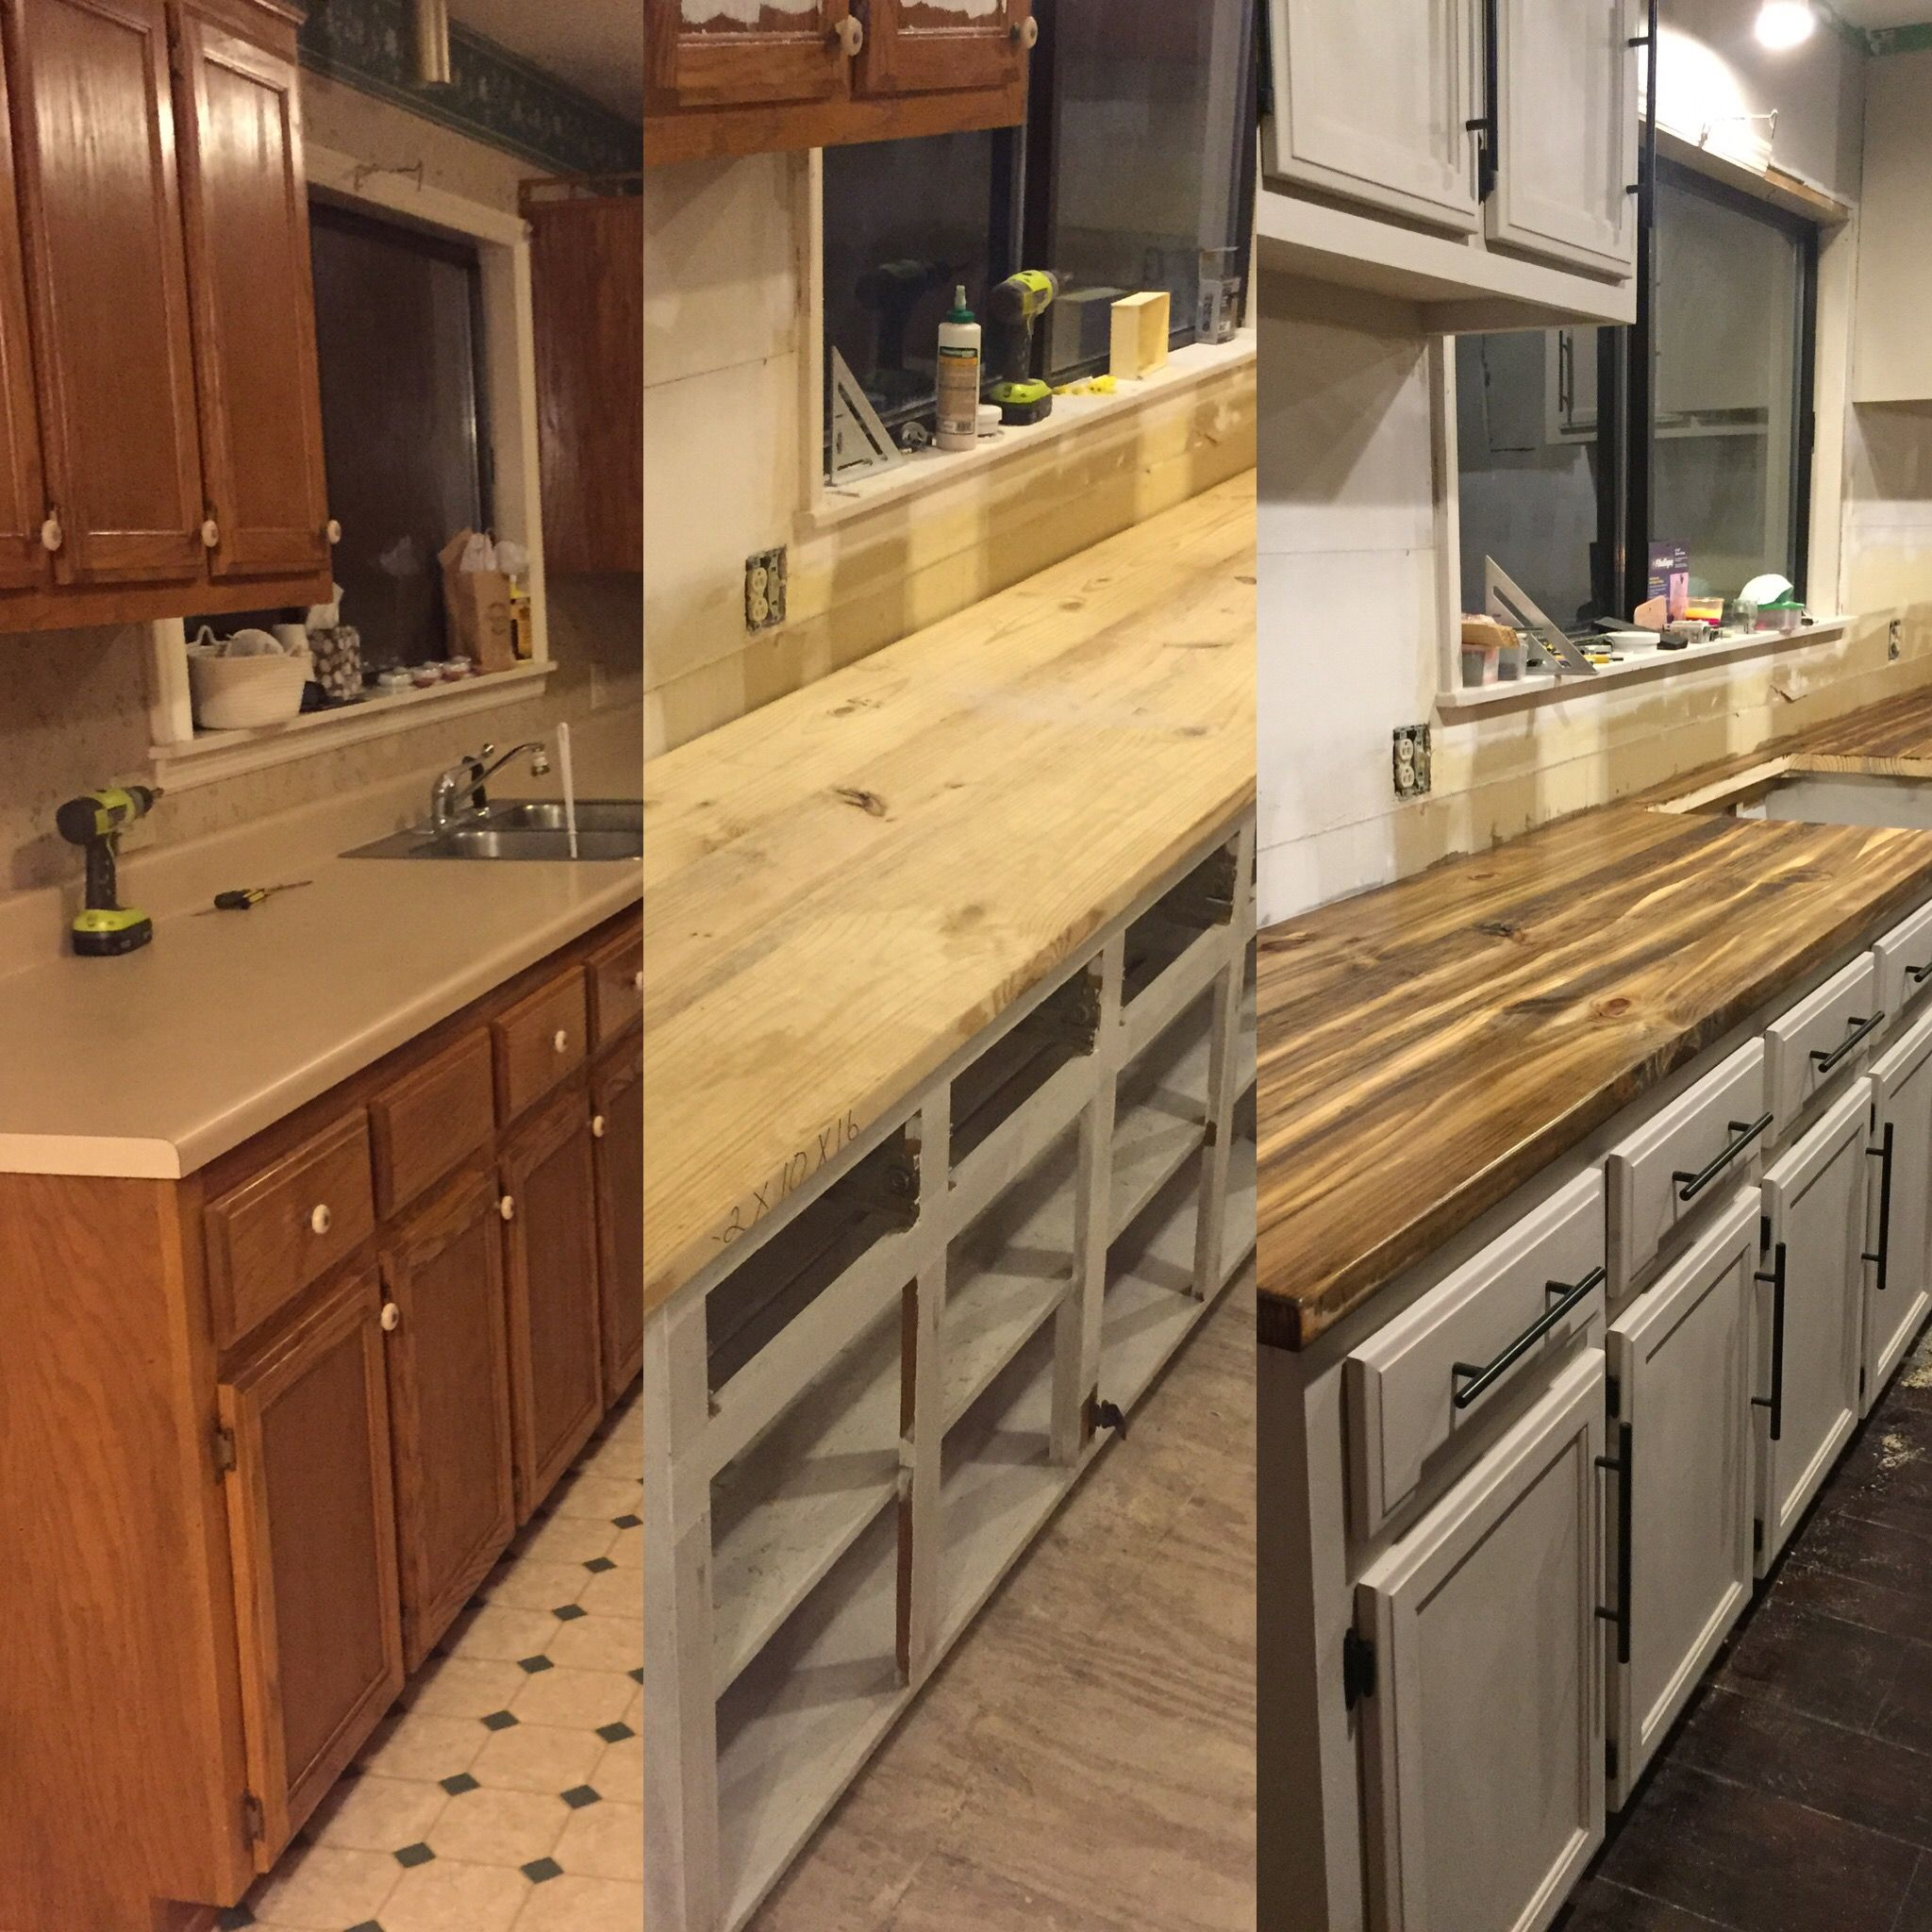 Diy 150 Countertops Follow Me On Instagram Biscuitsandbricks